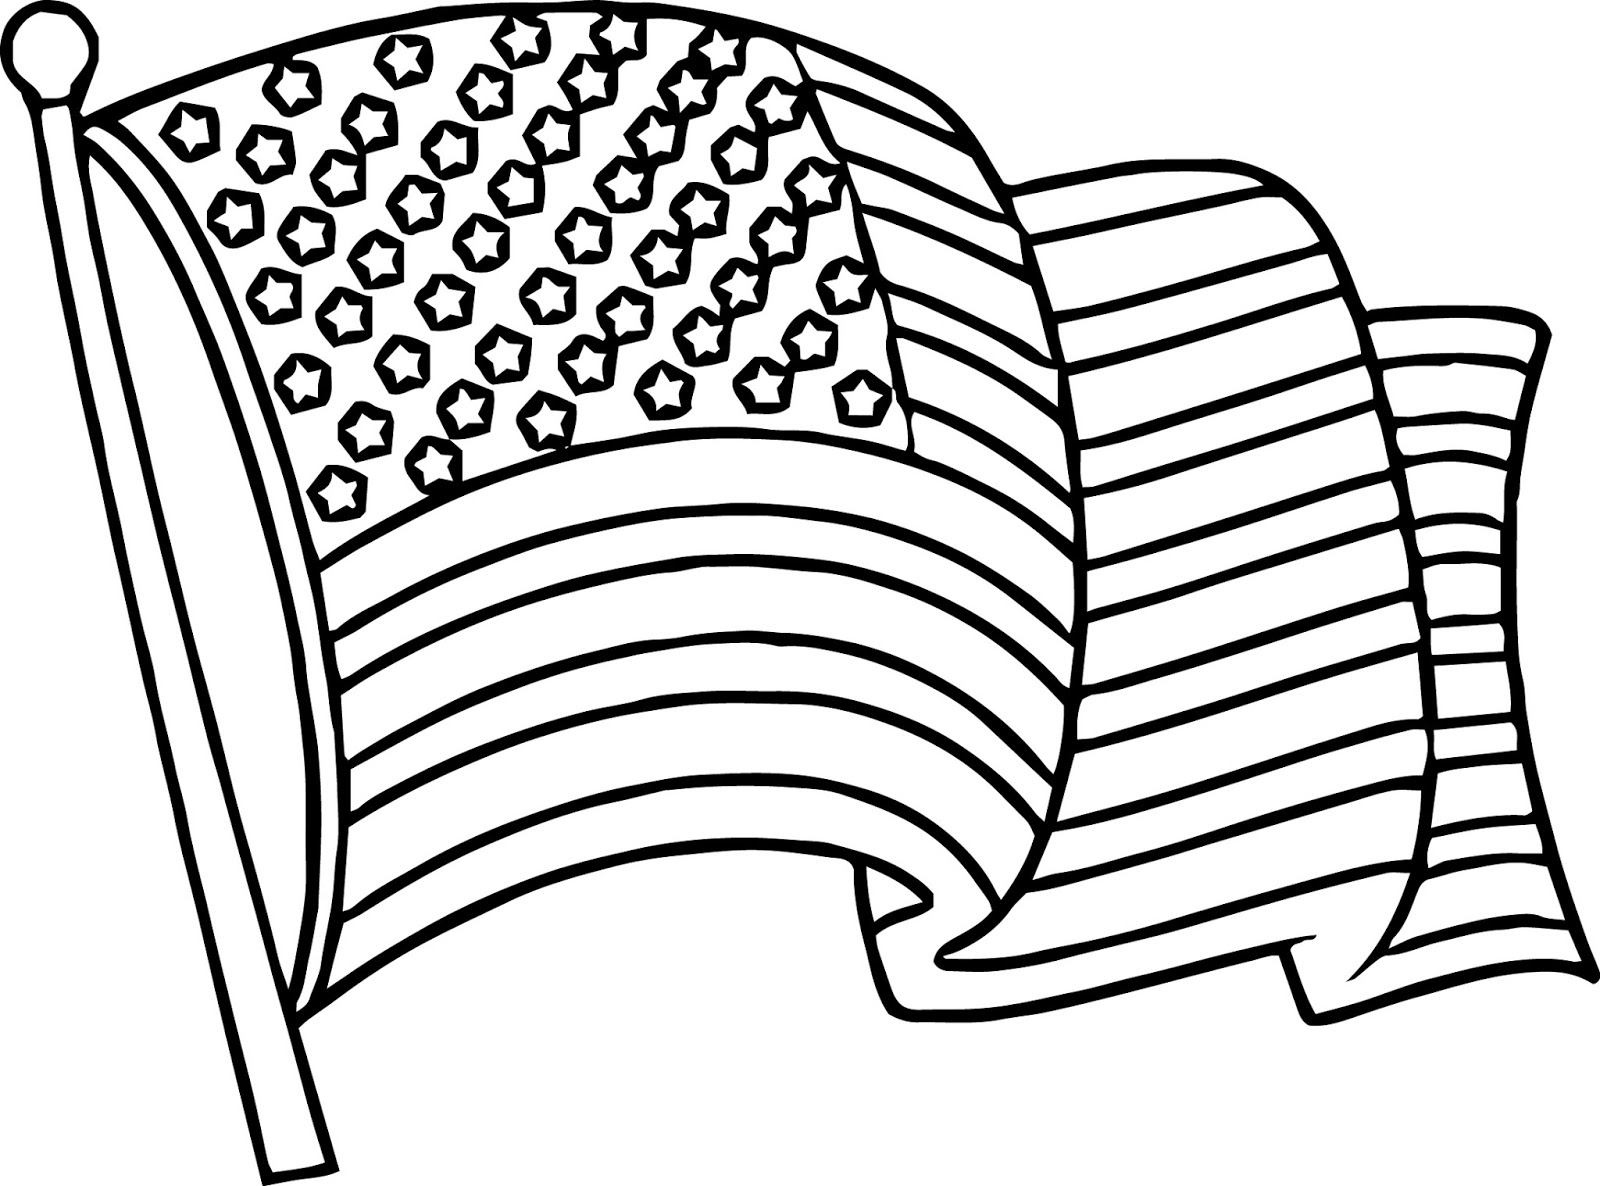 patriotic coloring pages - american flag coloring pages best coloring pages for kids